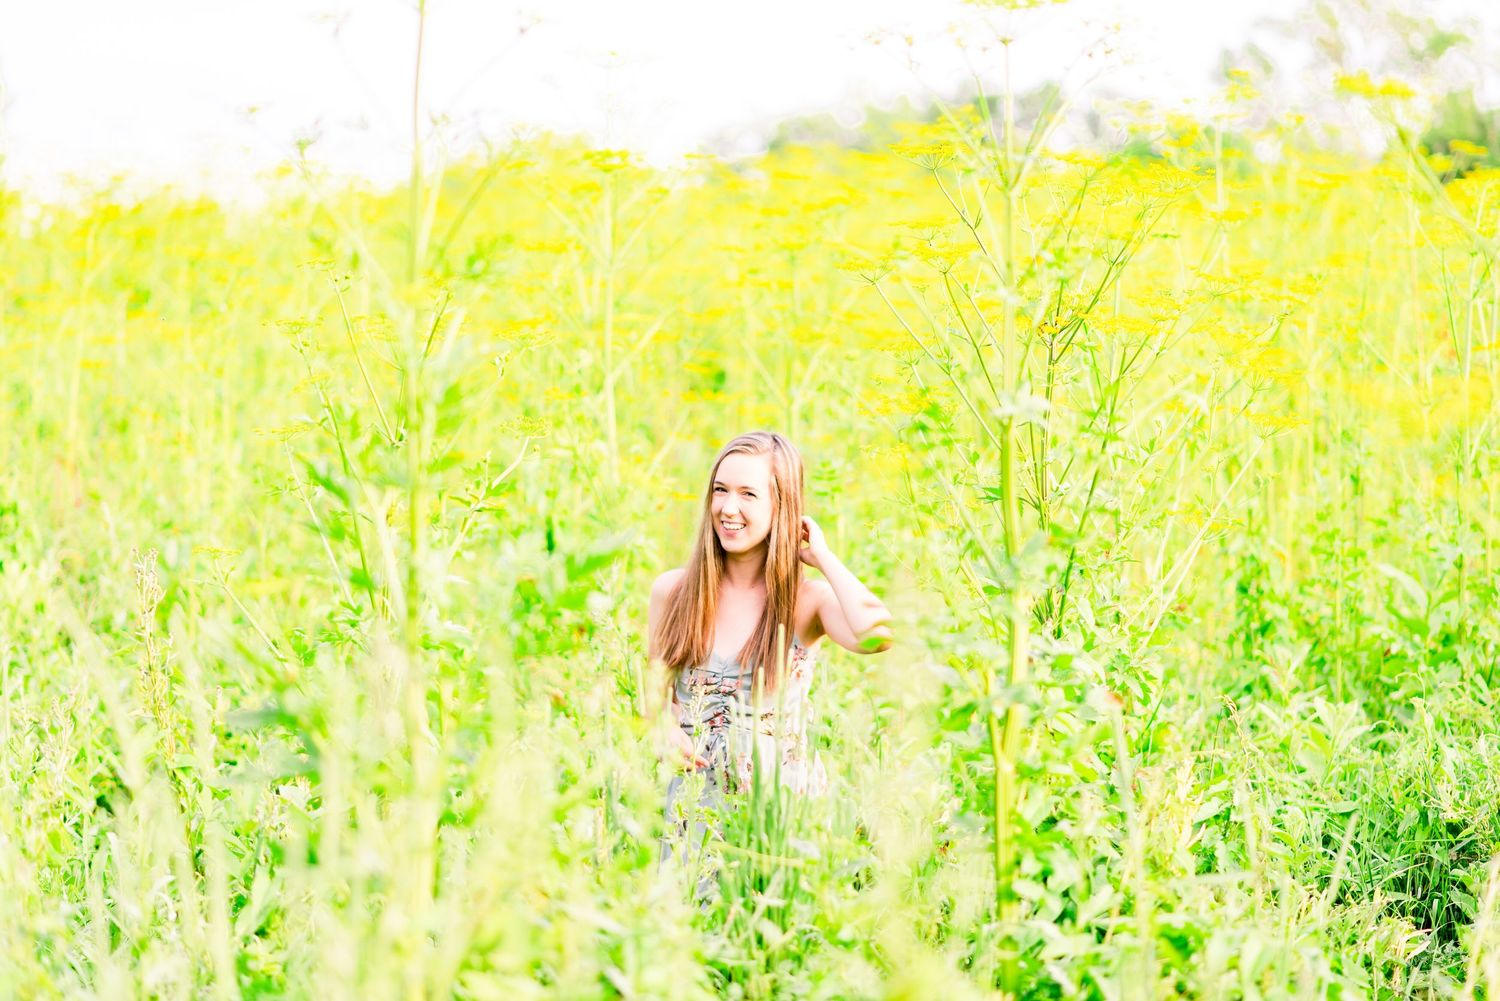 young woman standing in field of giant yellow flowers for summer senior pictures at Montrose Bird Sanctuary in Chicago